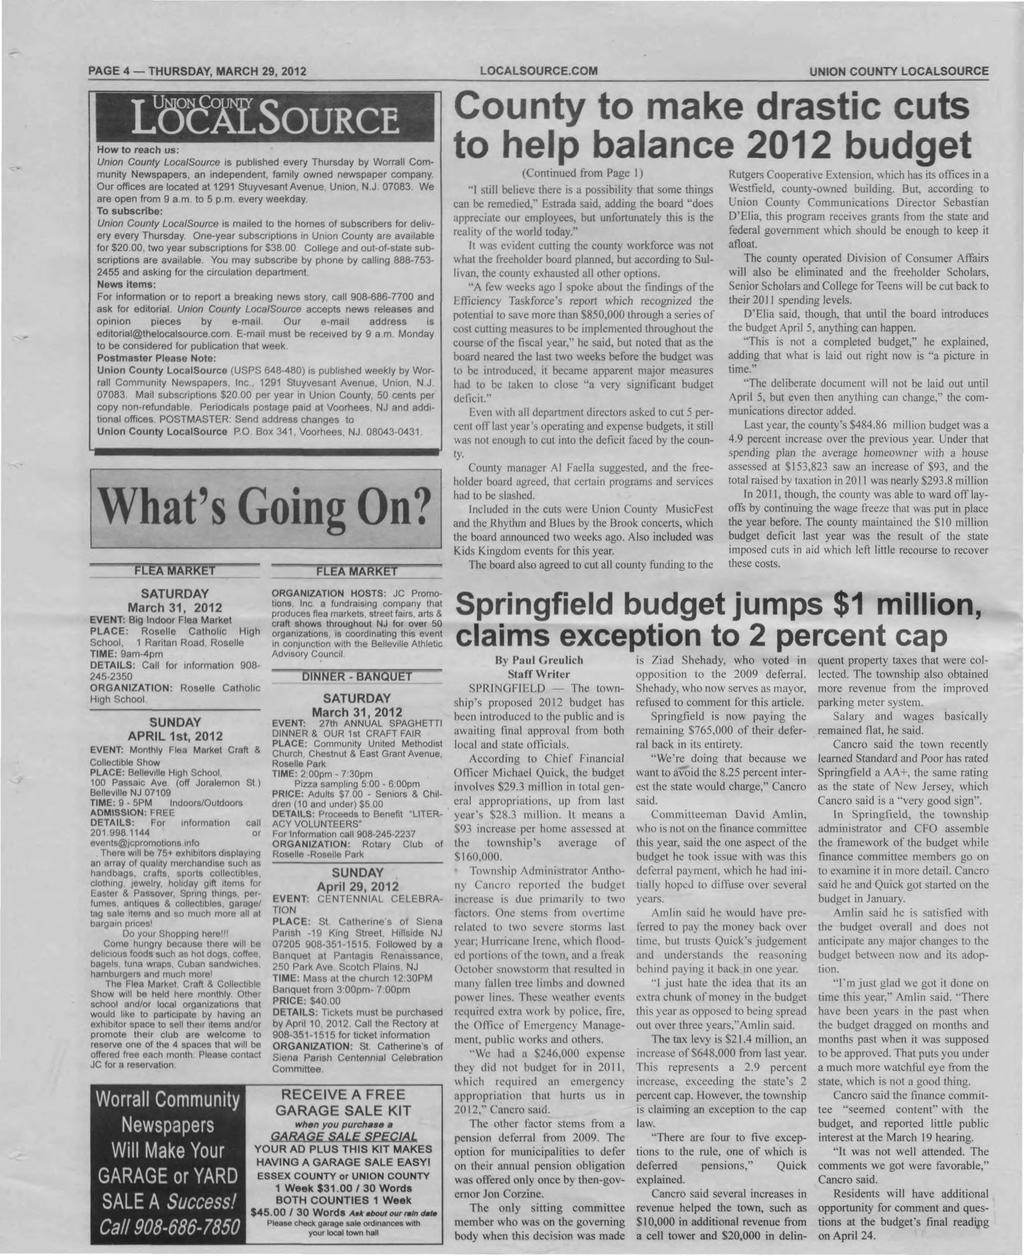 PAGE 4 THURSDAY, MARCH 29, 2012 LOCALSOURCE.